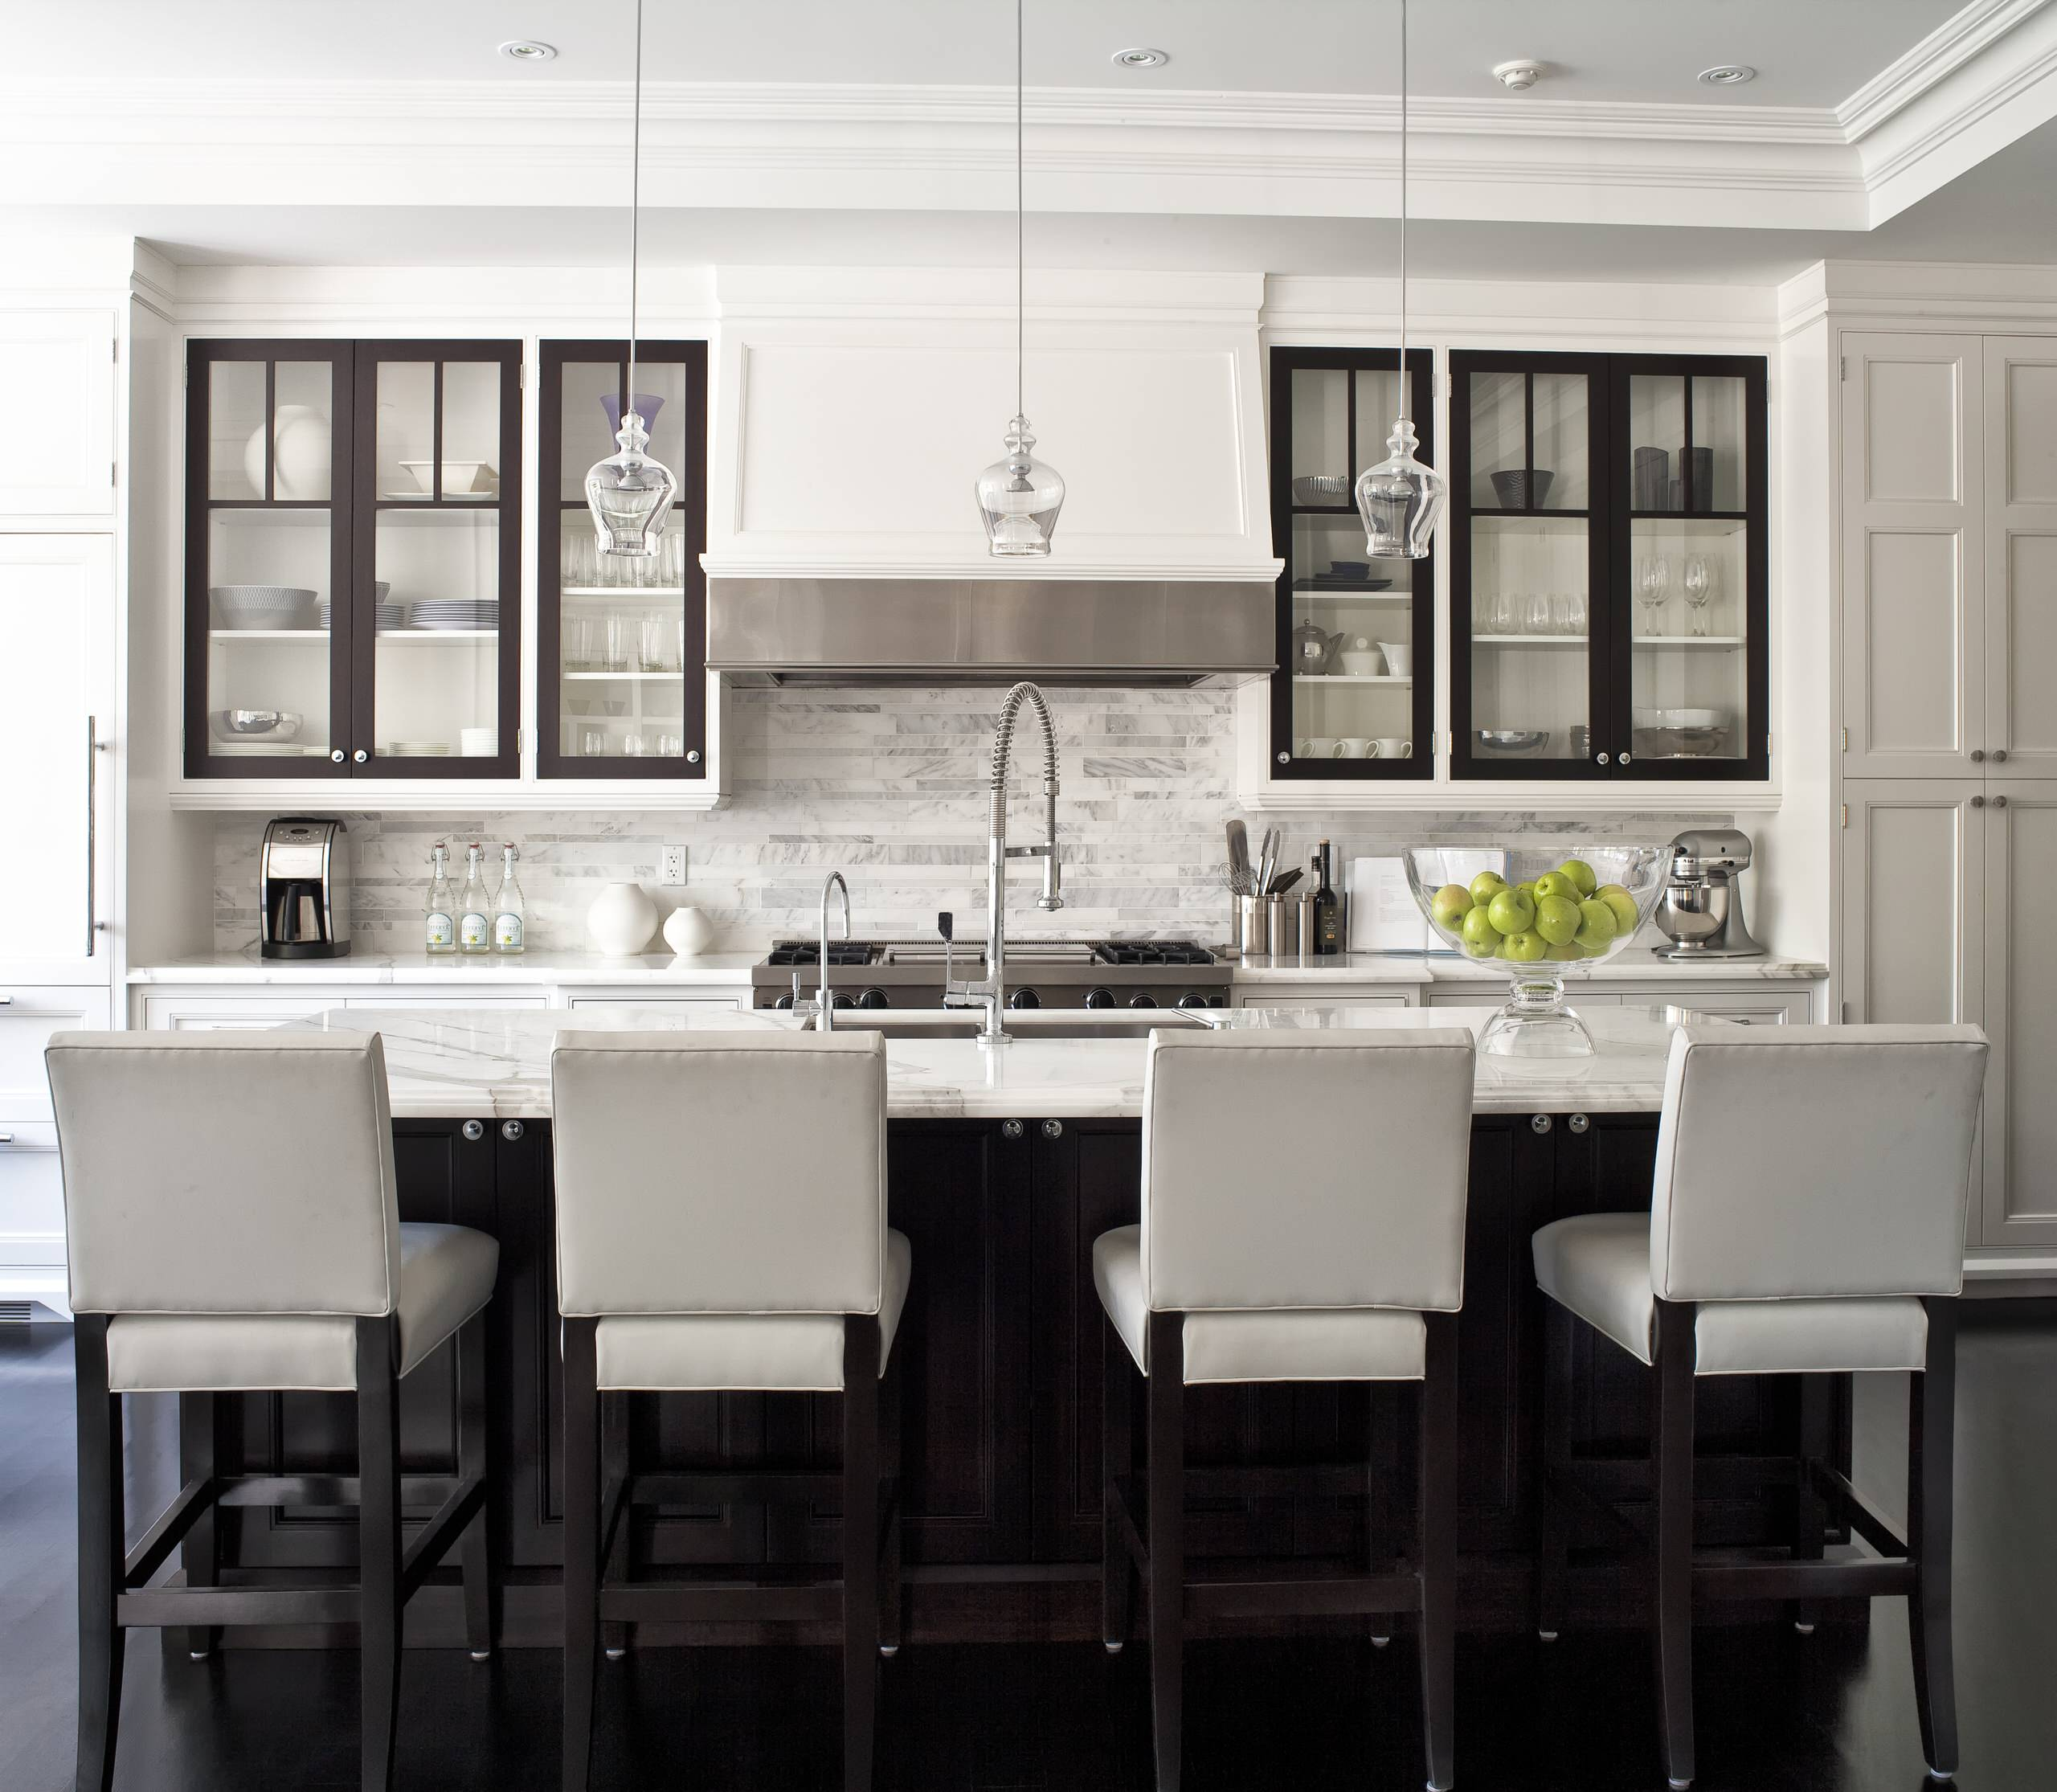 75 Beautiful Galley Kitchen Pictures Ideas April 2021 Houzz